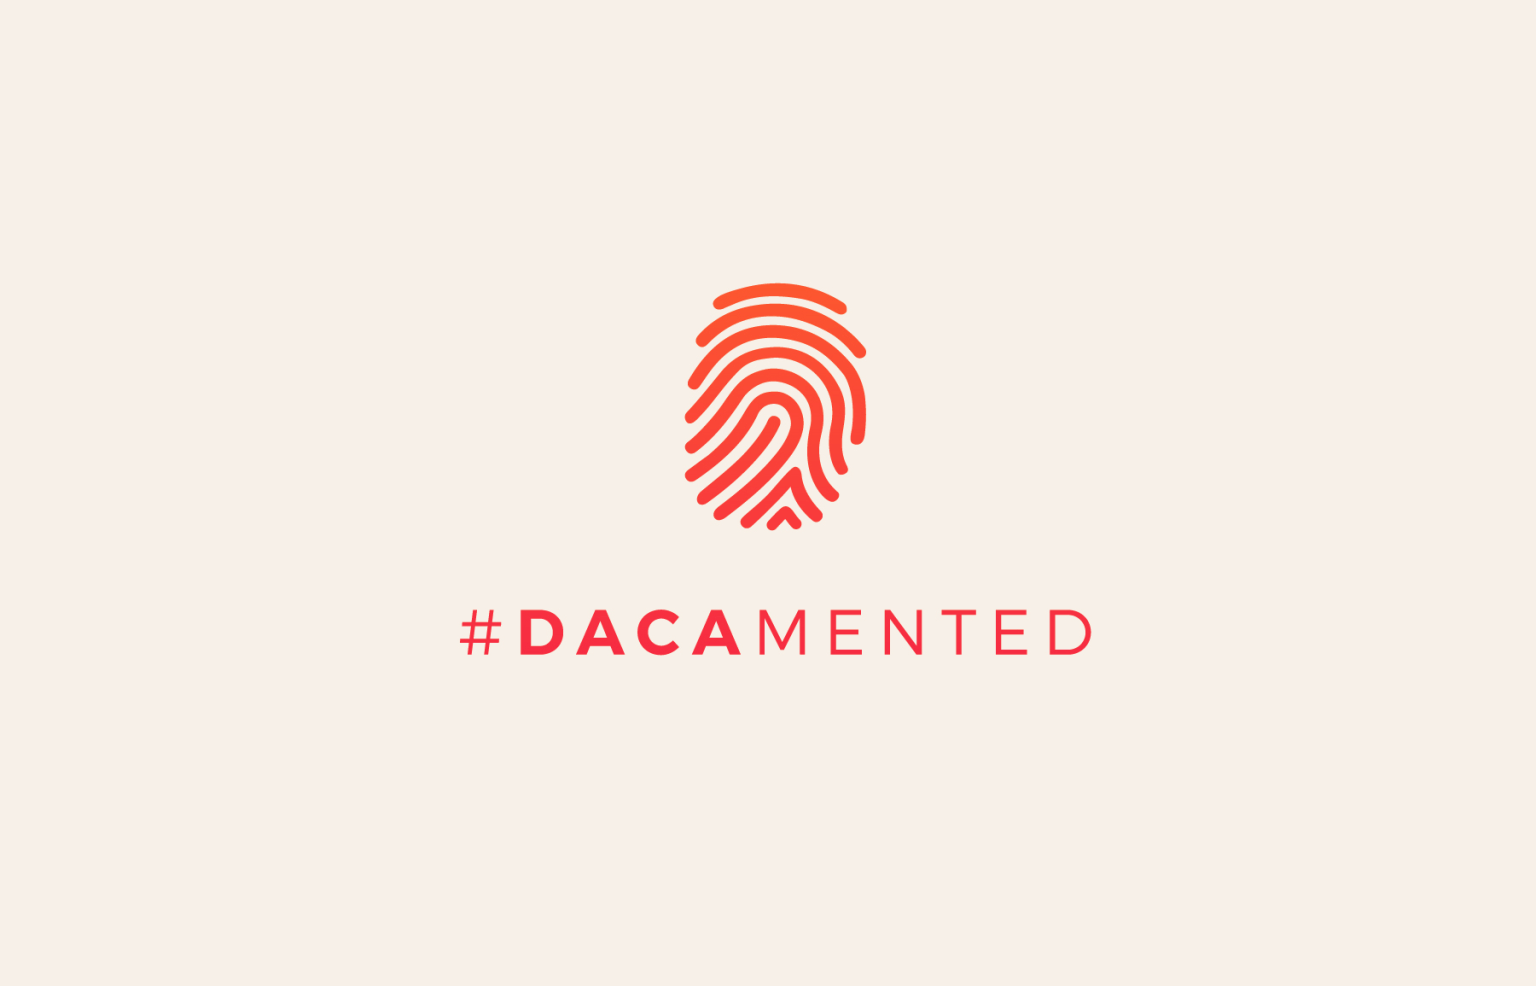 DACAMENTED LOGO AND SOCIAL MEDIA FLYER